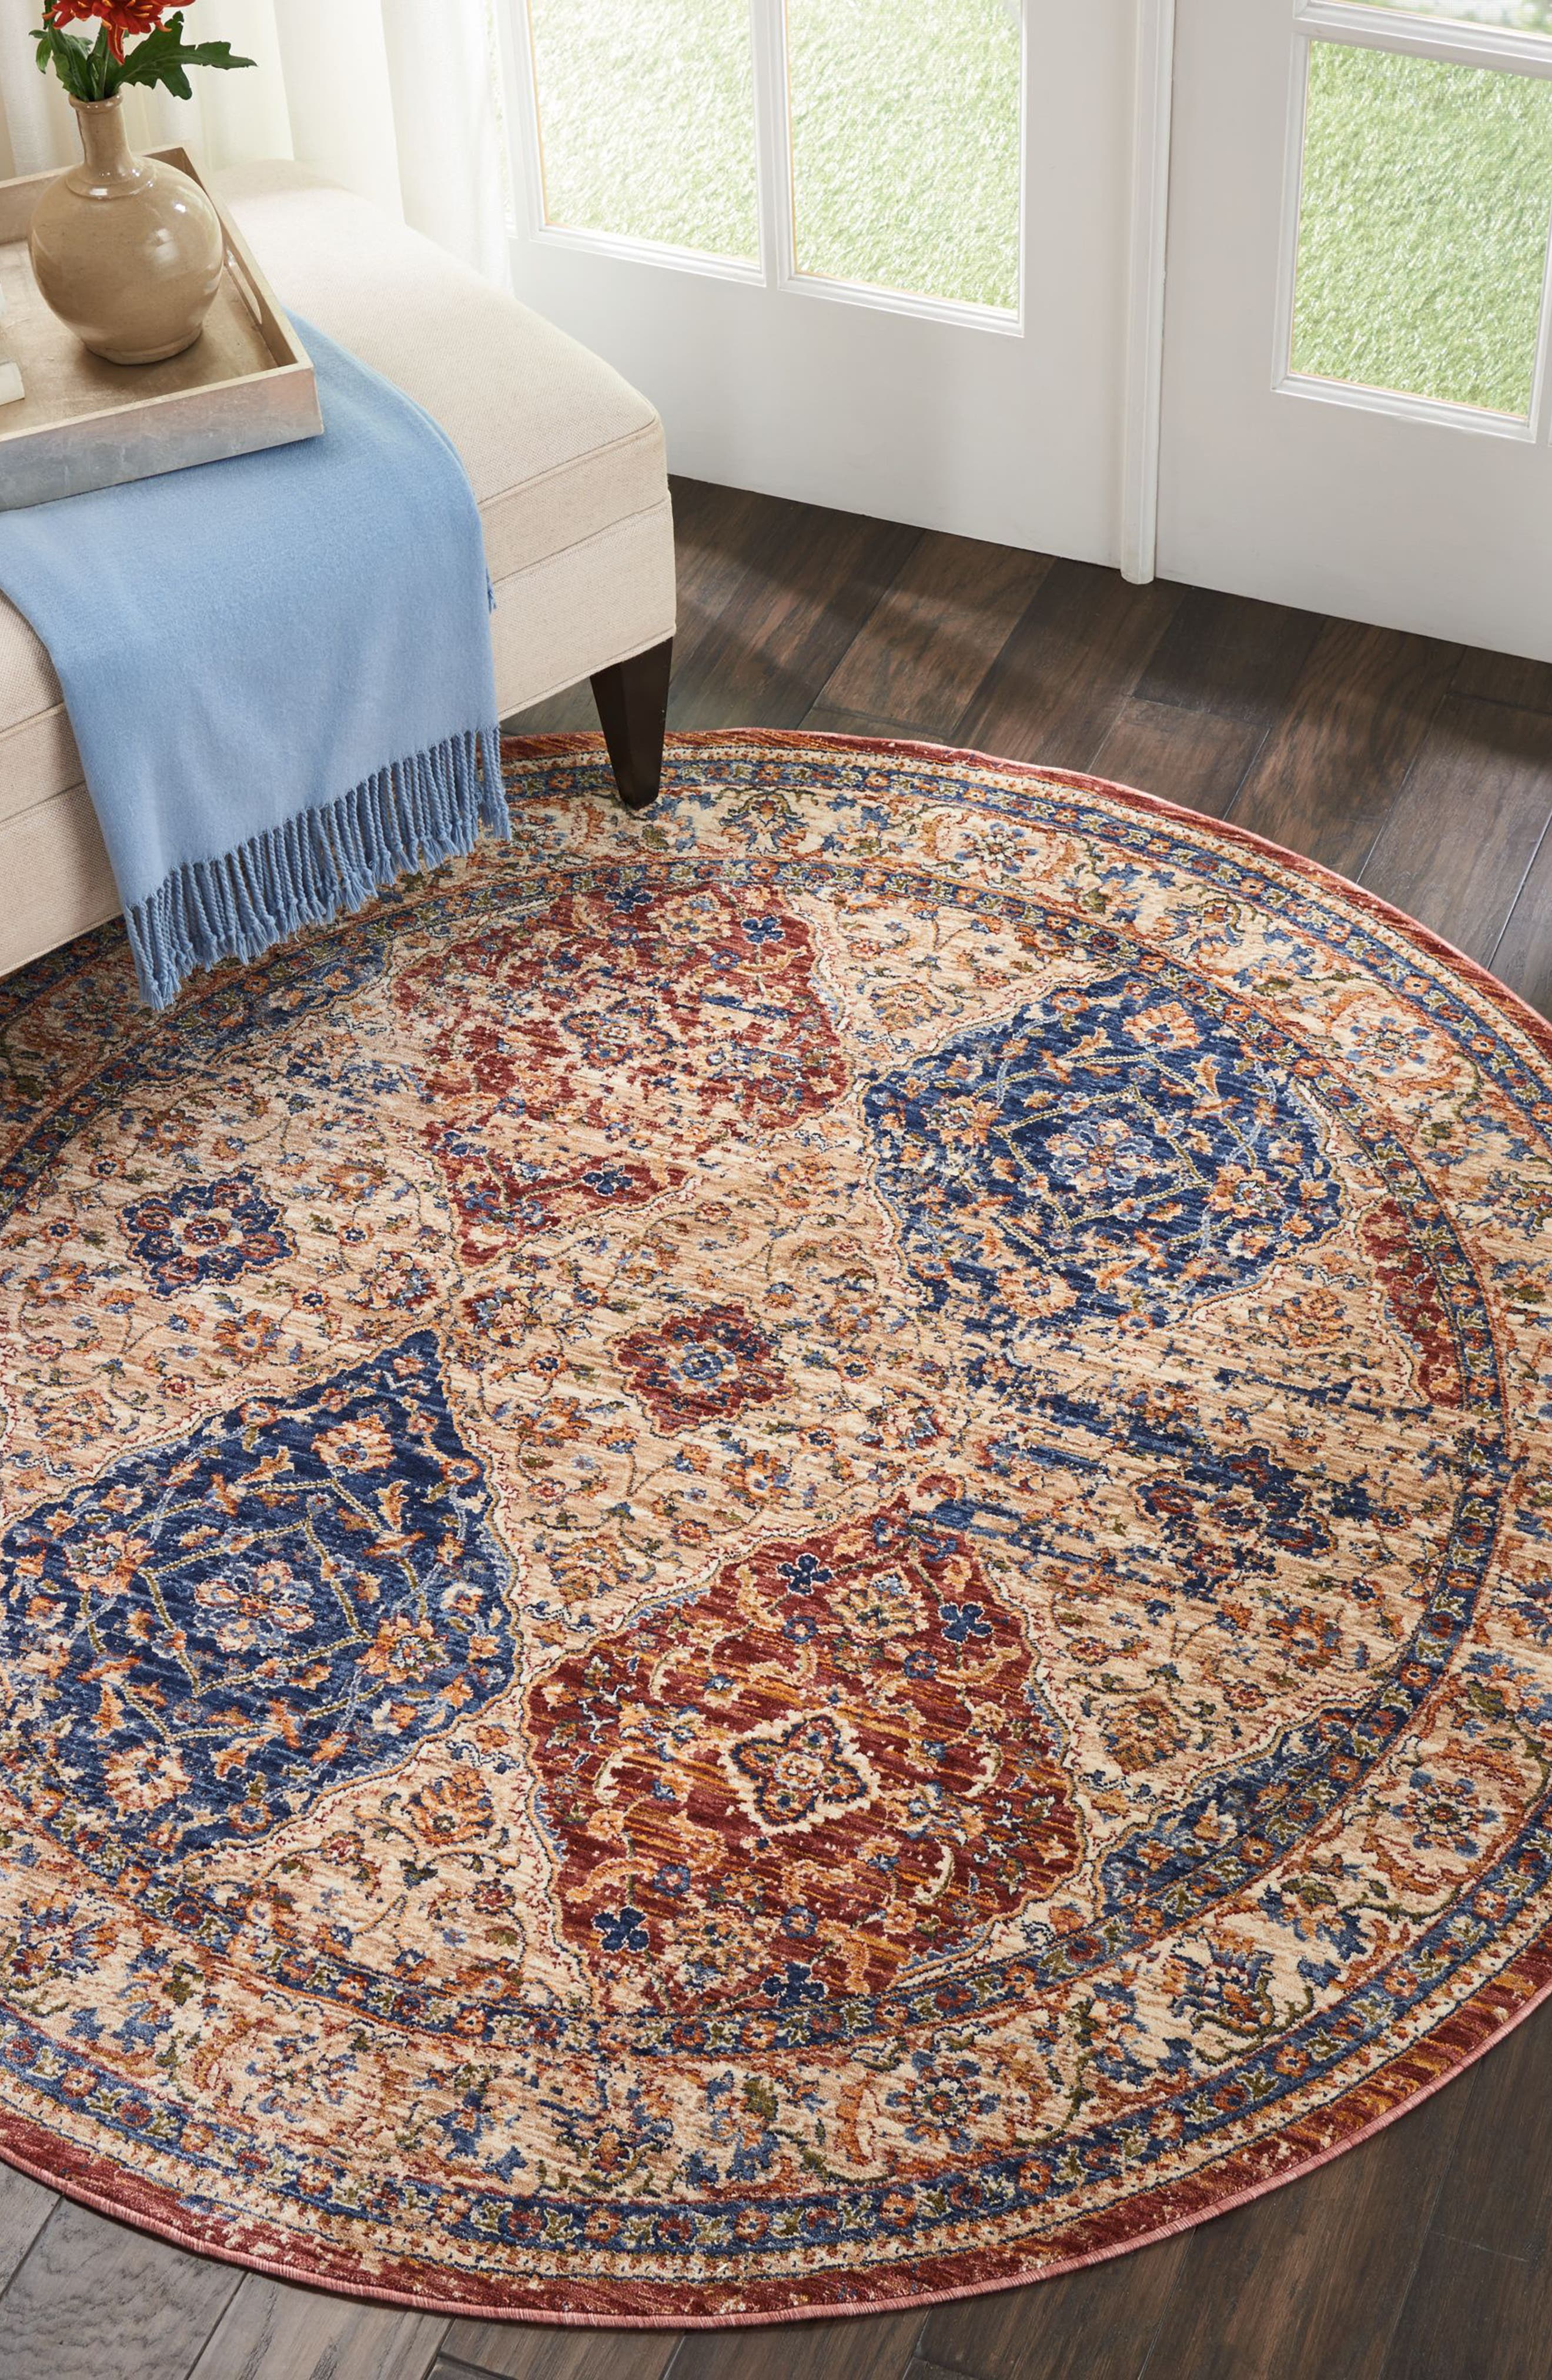 Vivid Ivory Round Area Rug,                             Alternate thumbnail 2, color,                             Multicolor